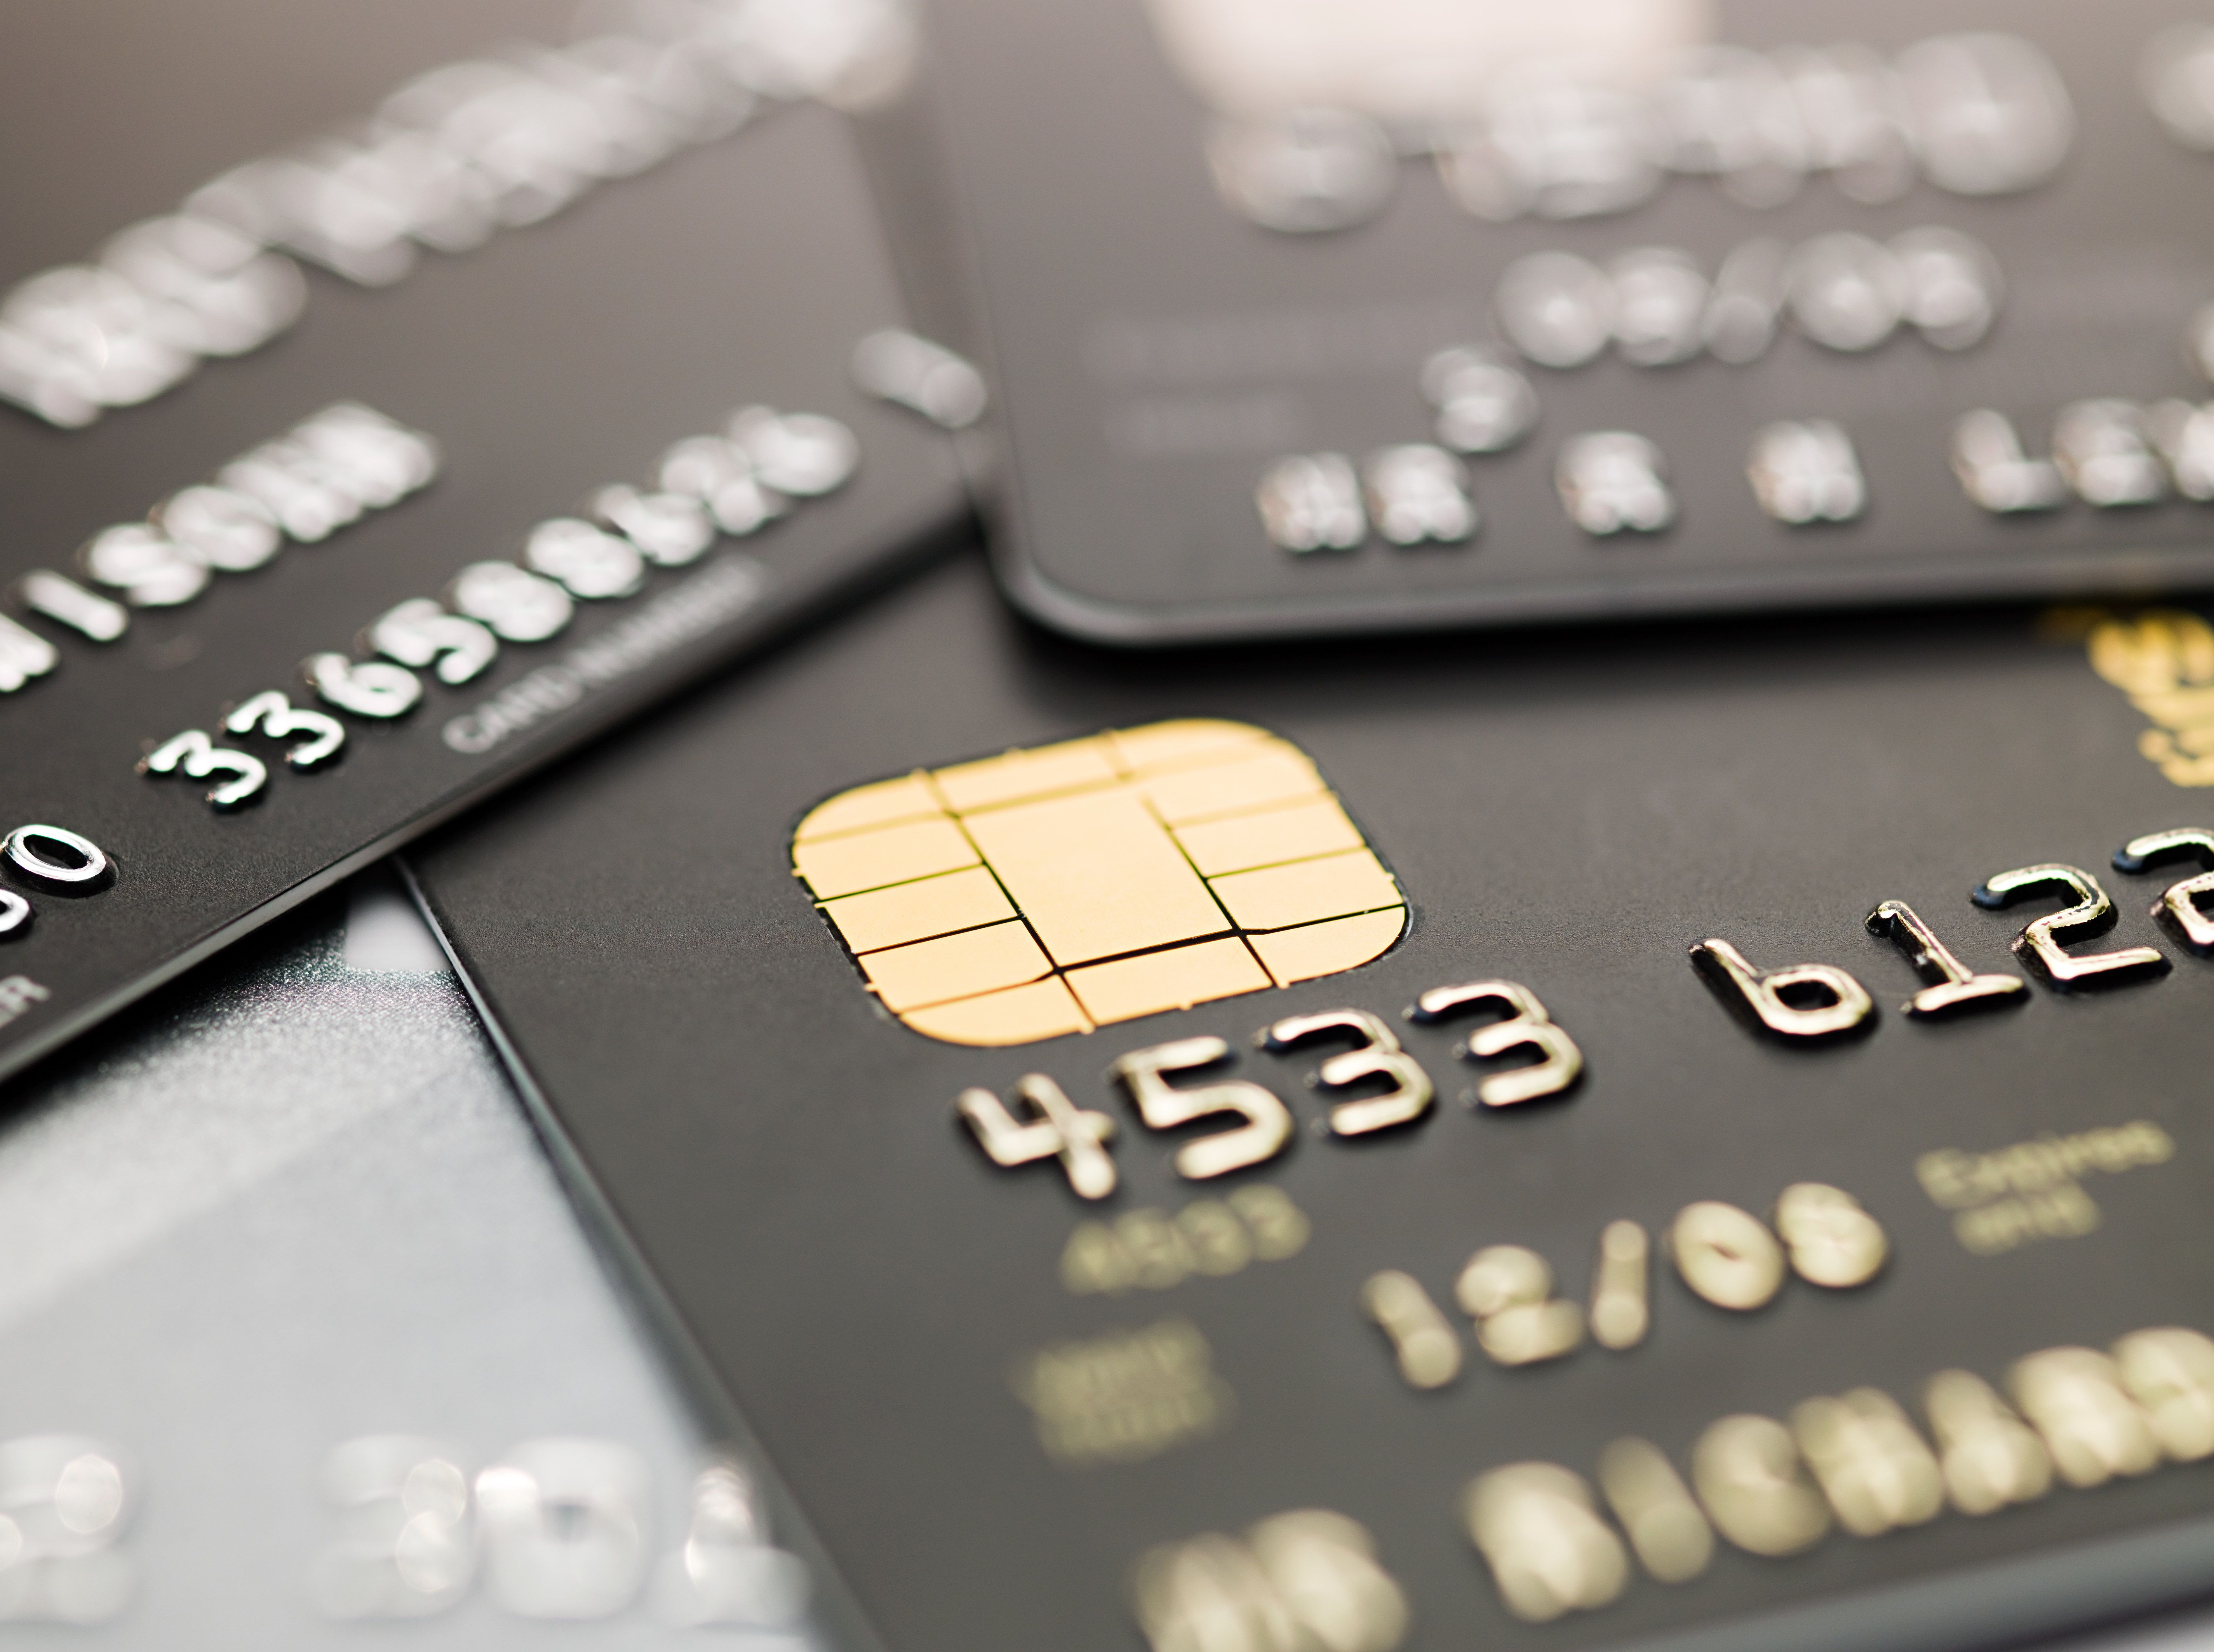 A close-up view of credit cards laying in a stack